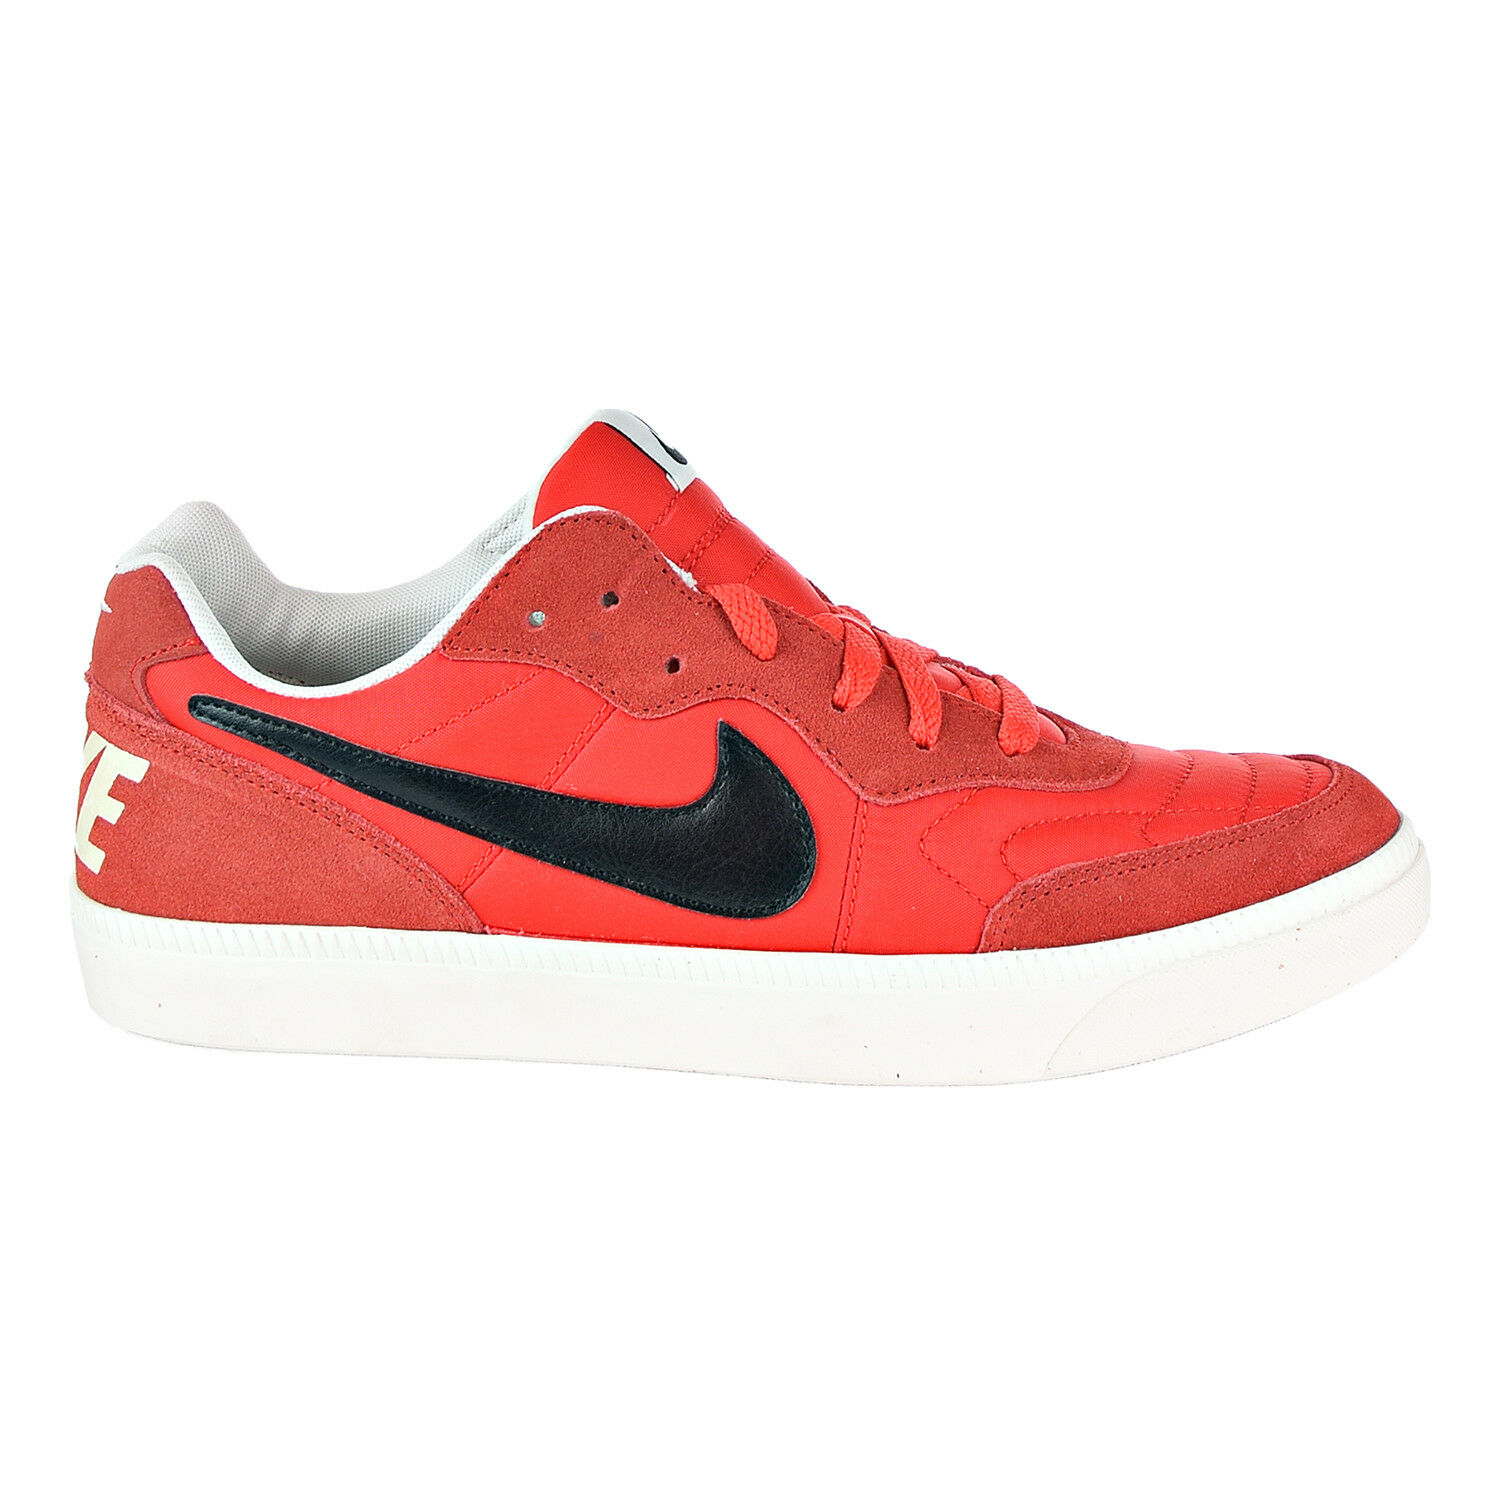 Nike Nike Nike NSW Tiempo Trainer Men's Sneaker shoes Challenge Red 644843-662 75e3d3